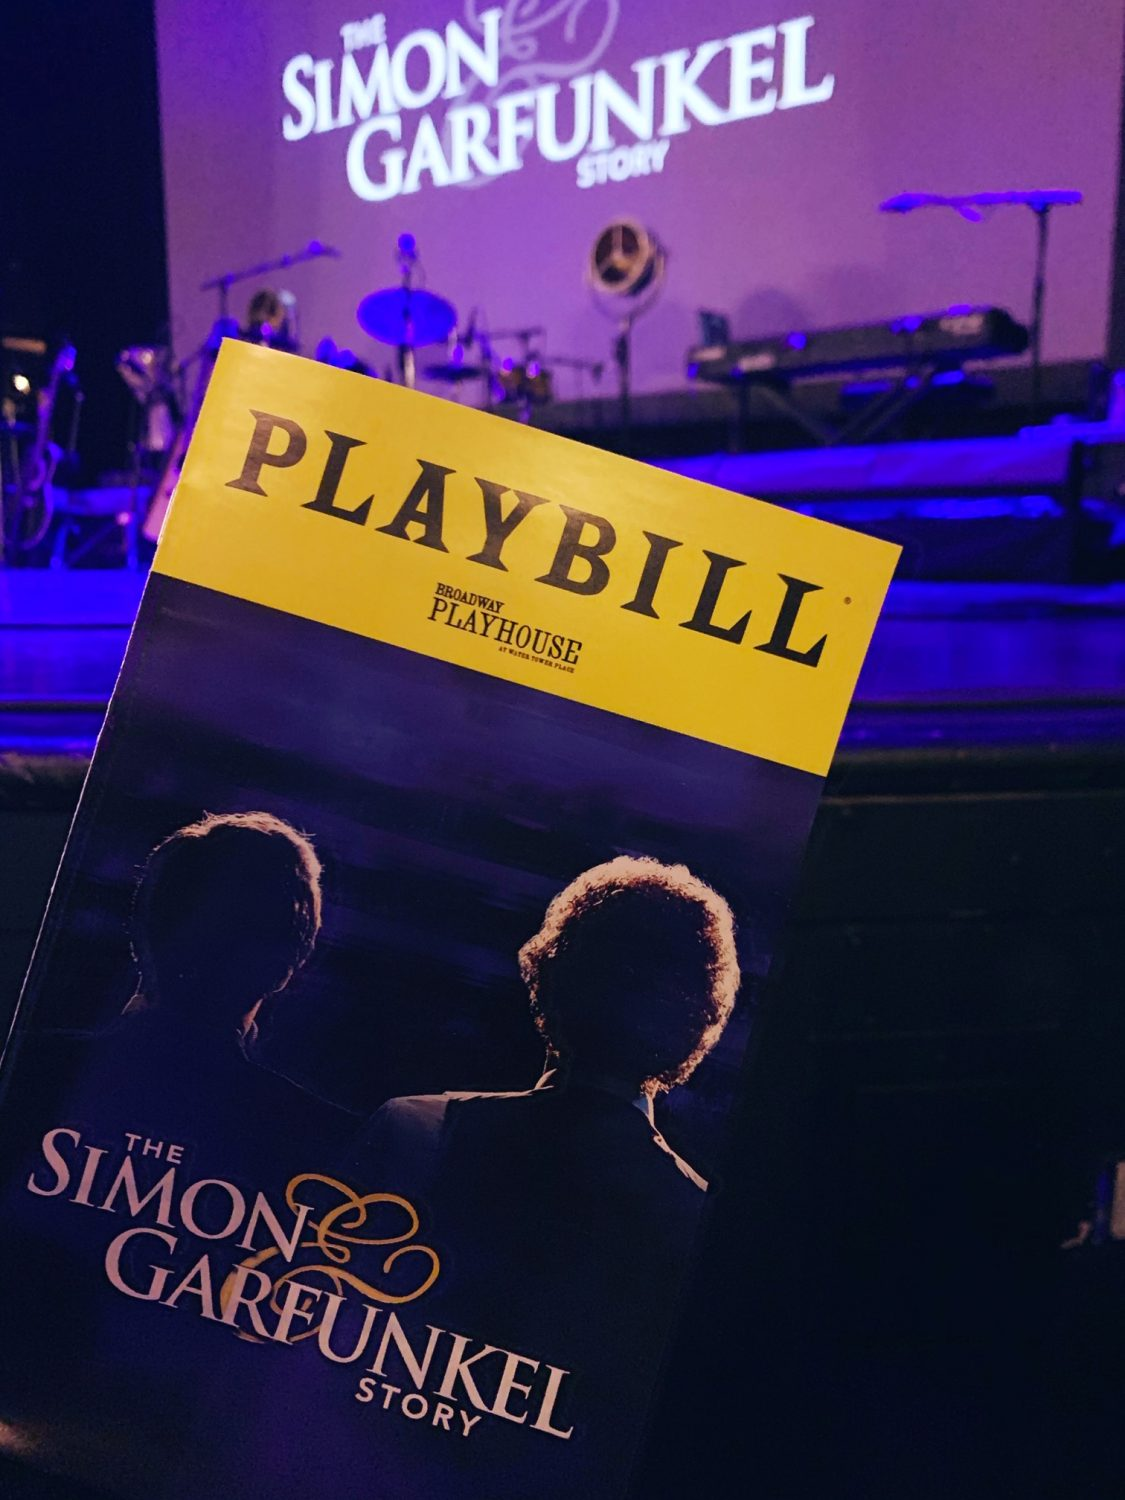 The Simon & Garfunkel Story Broadway in Chicago